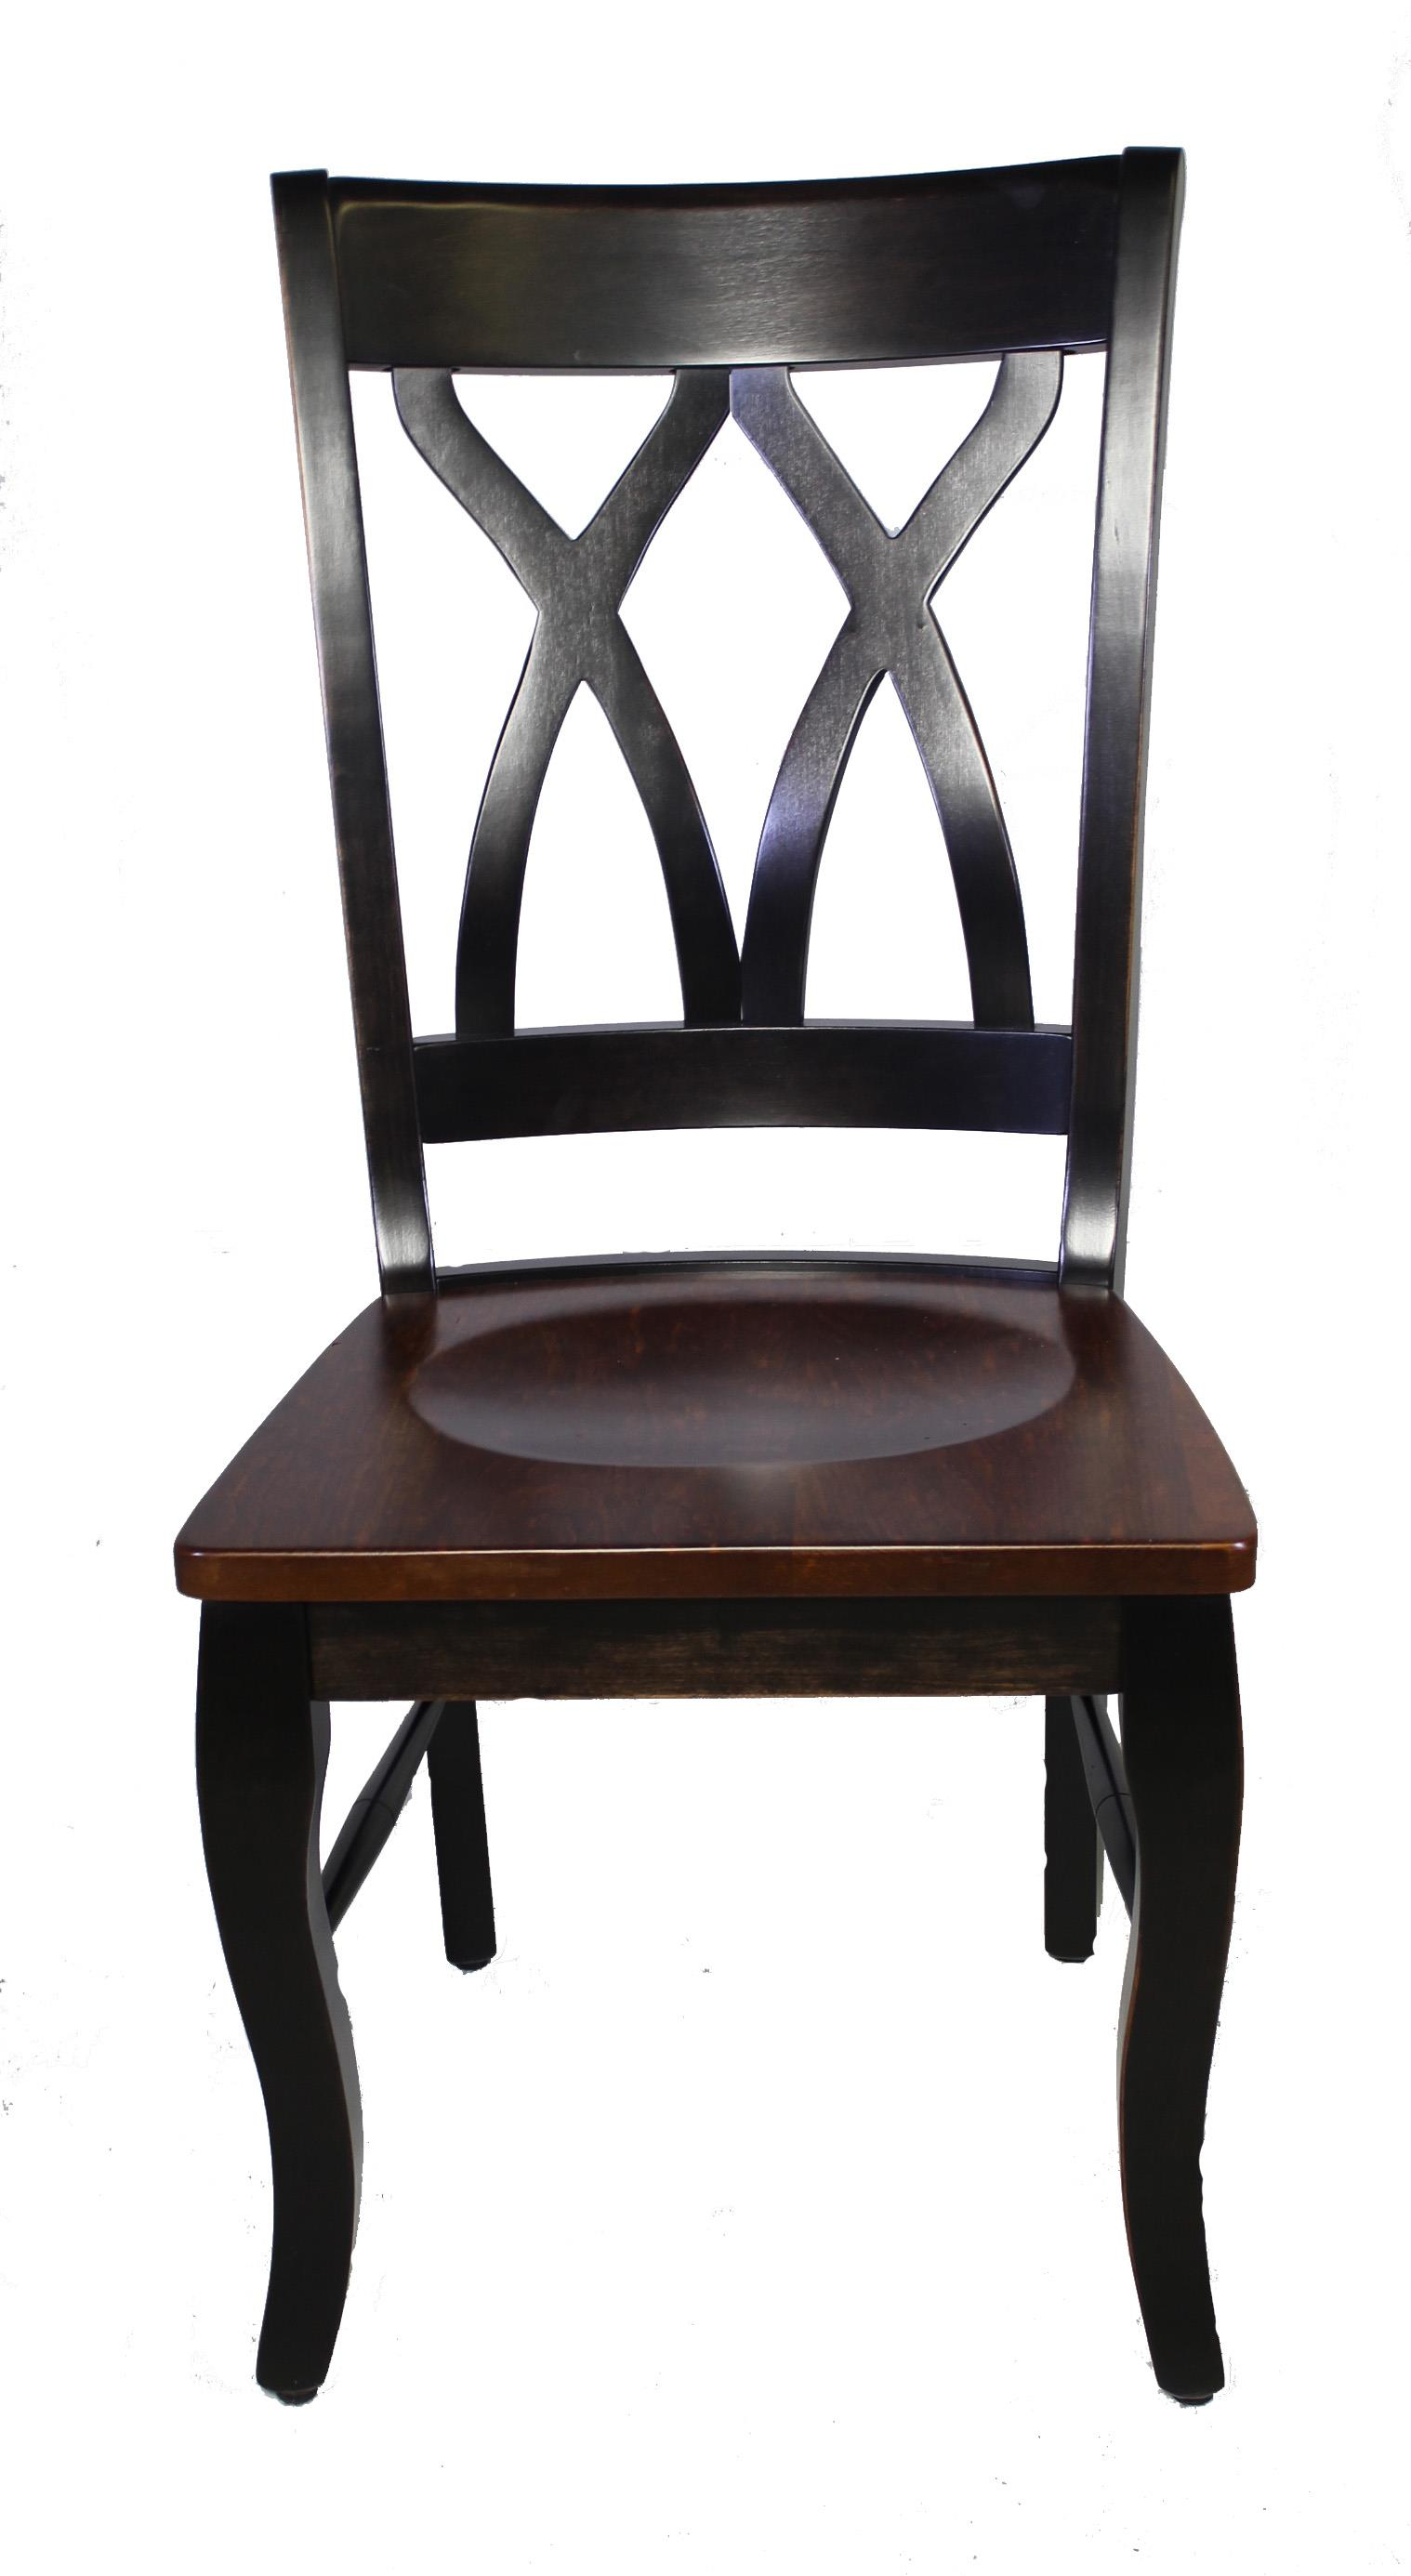 Trailway Wood EC4254 Side Chair - Item Number: 922-s